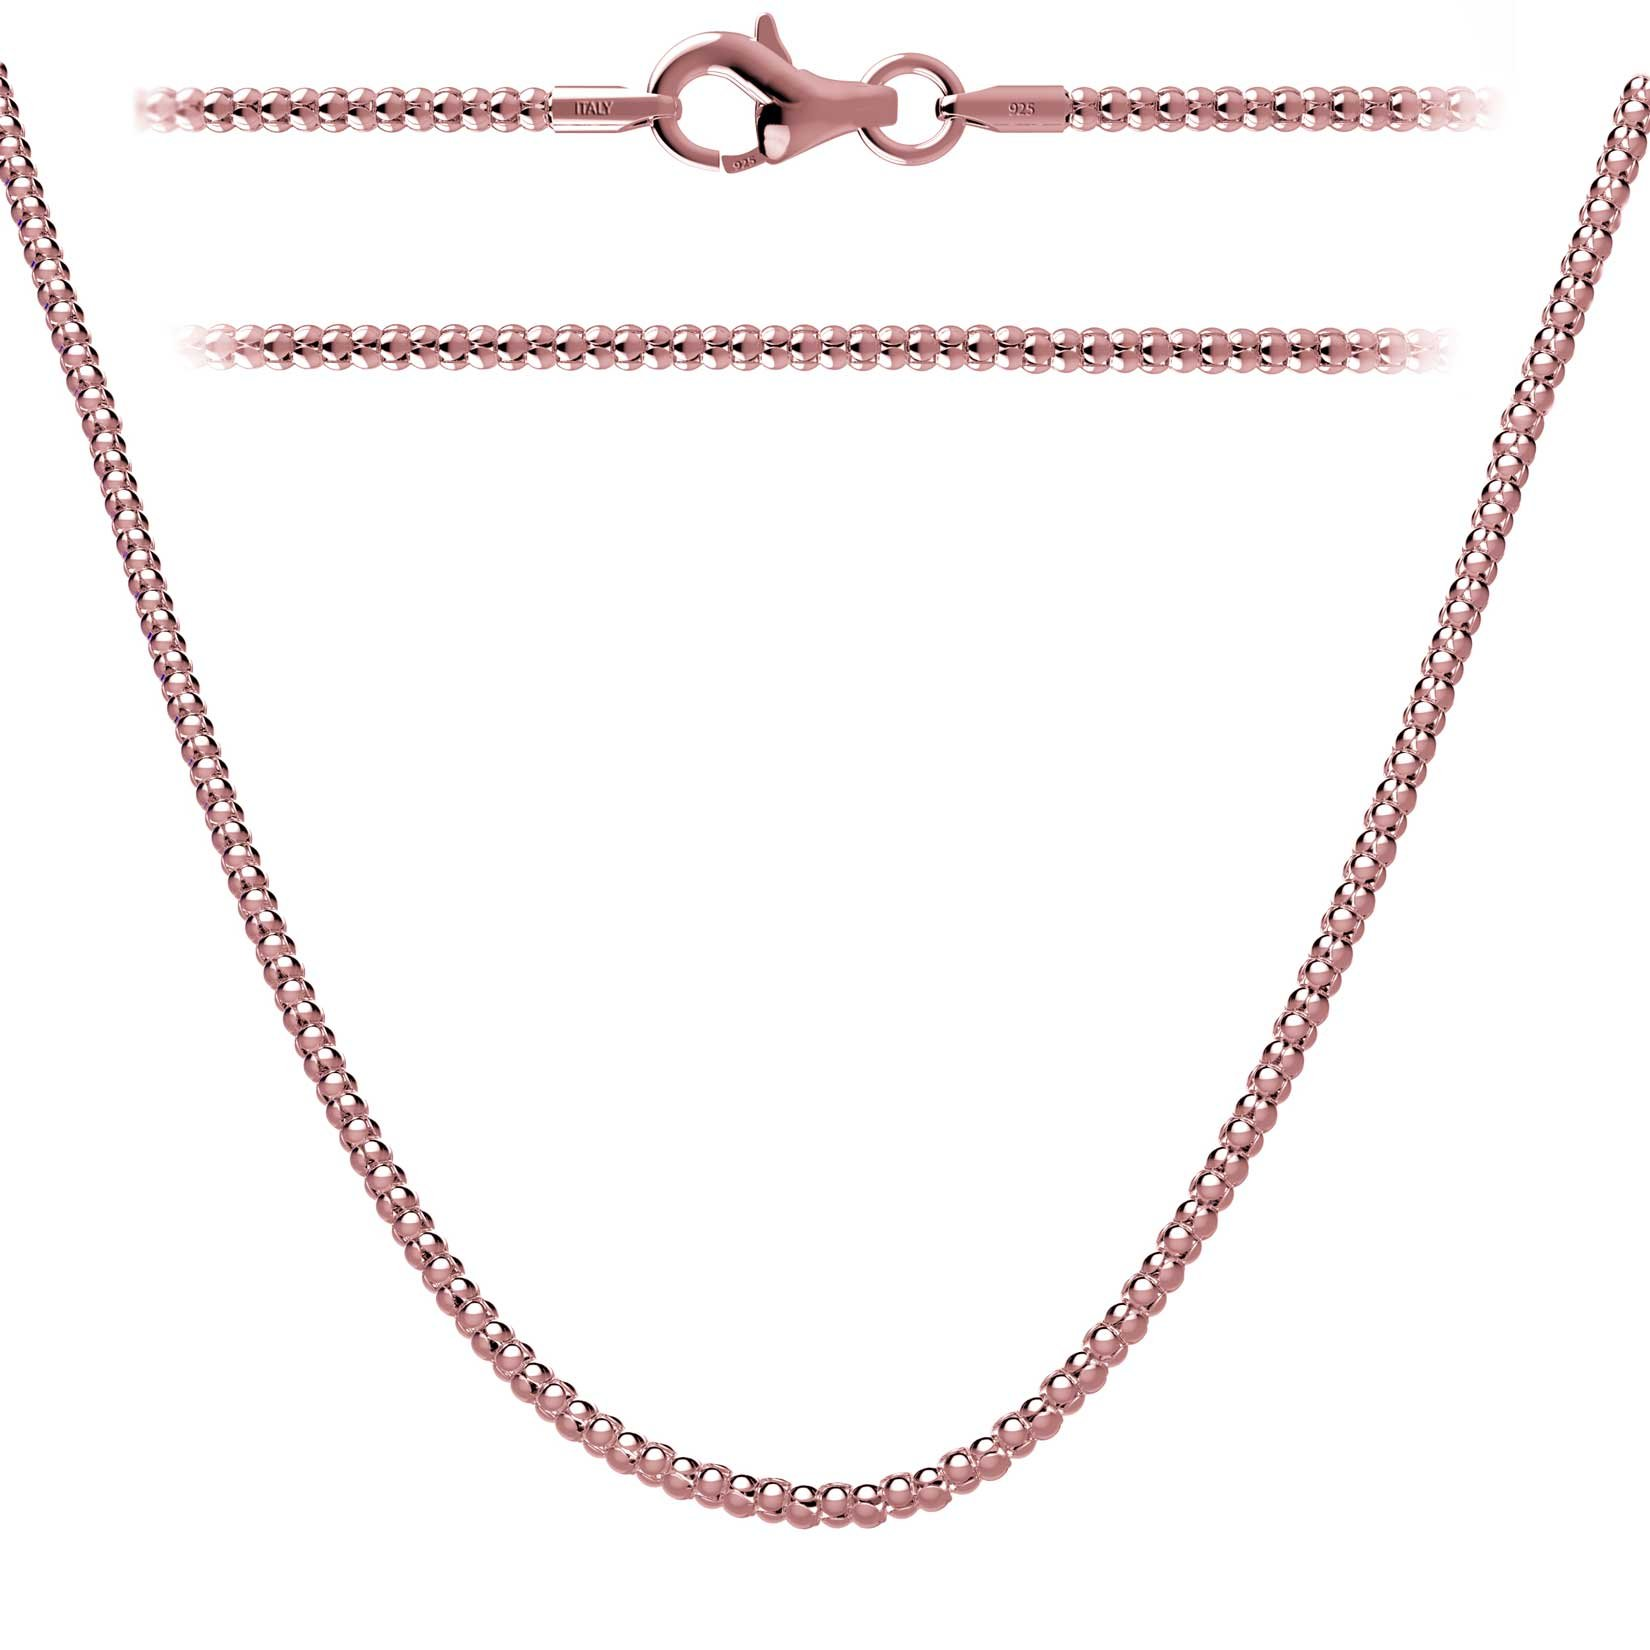 Rose Gold Plated Sterling Silver Italian Popcorn Chain Necklace 16 inch